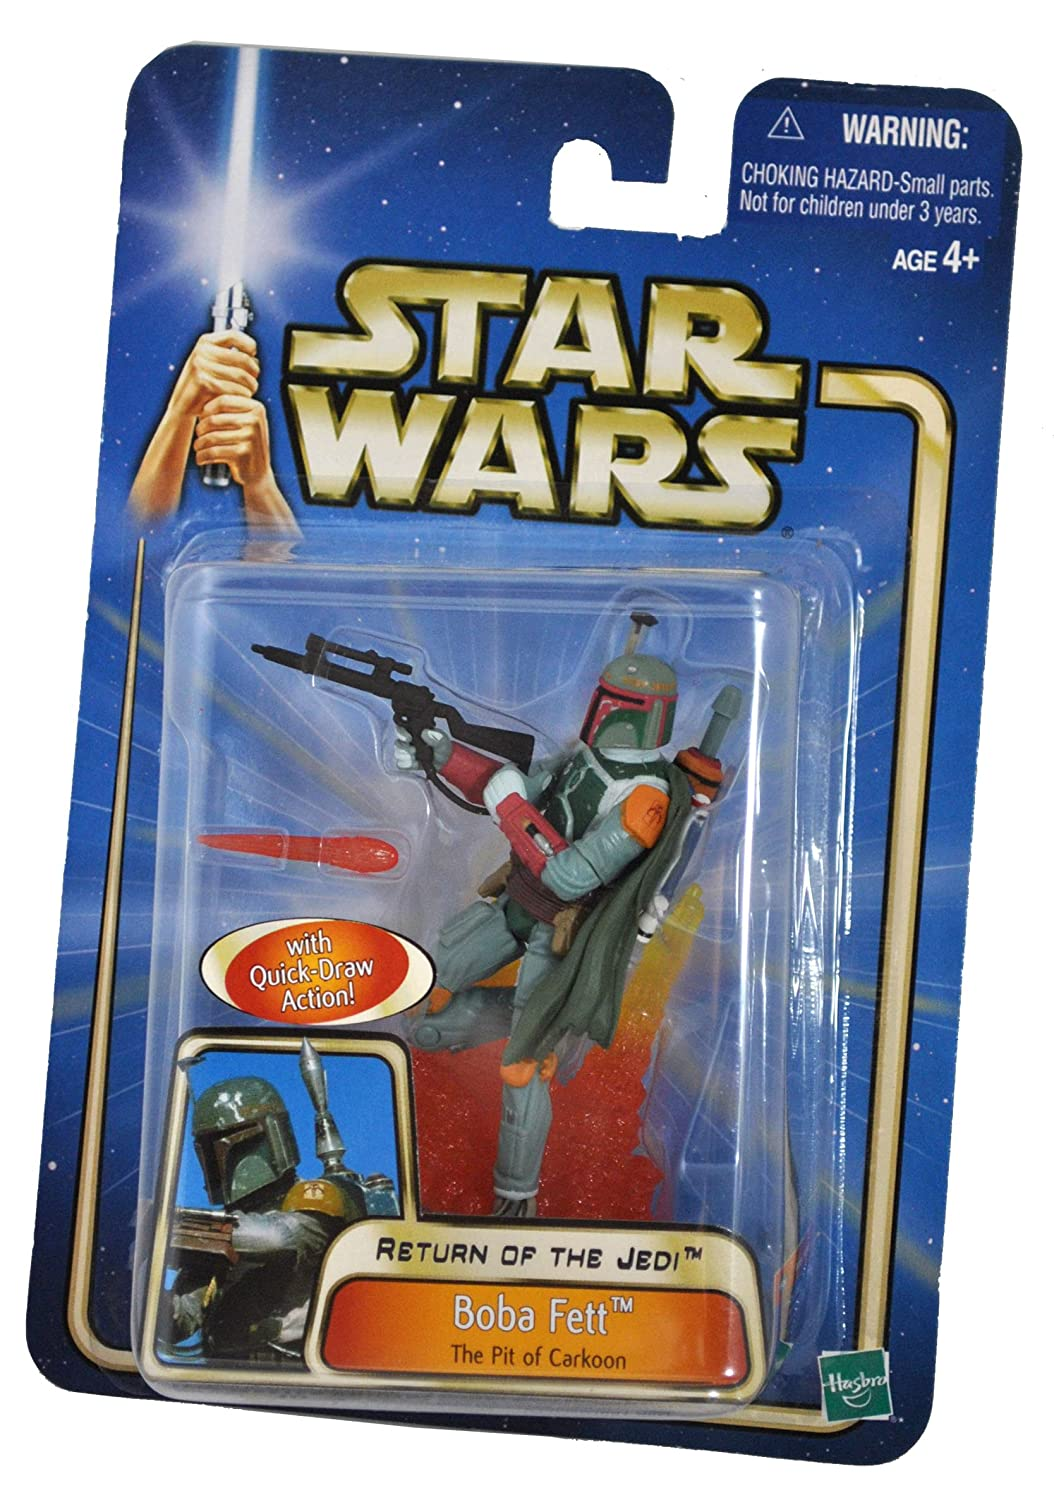 BOBA FETT at The Pit of Carkoon with Quick Draw Action Star Wars Year 2002 Return of the Jedi Series 4 Inch Tall Action Figure Blaster Rifle with Removable Fireblast Tip and Display Base 84920